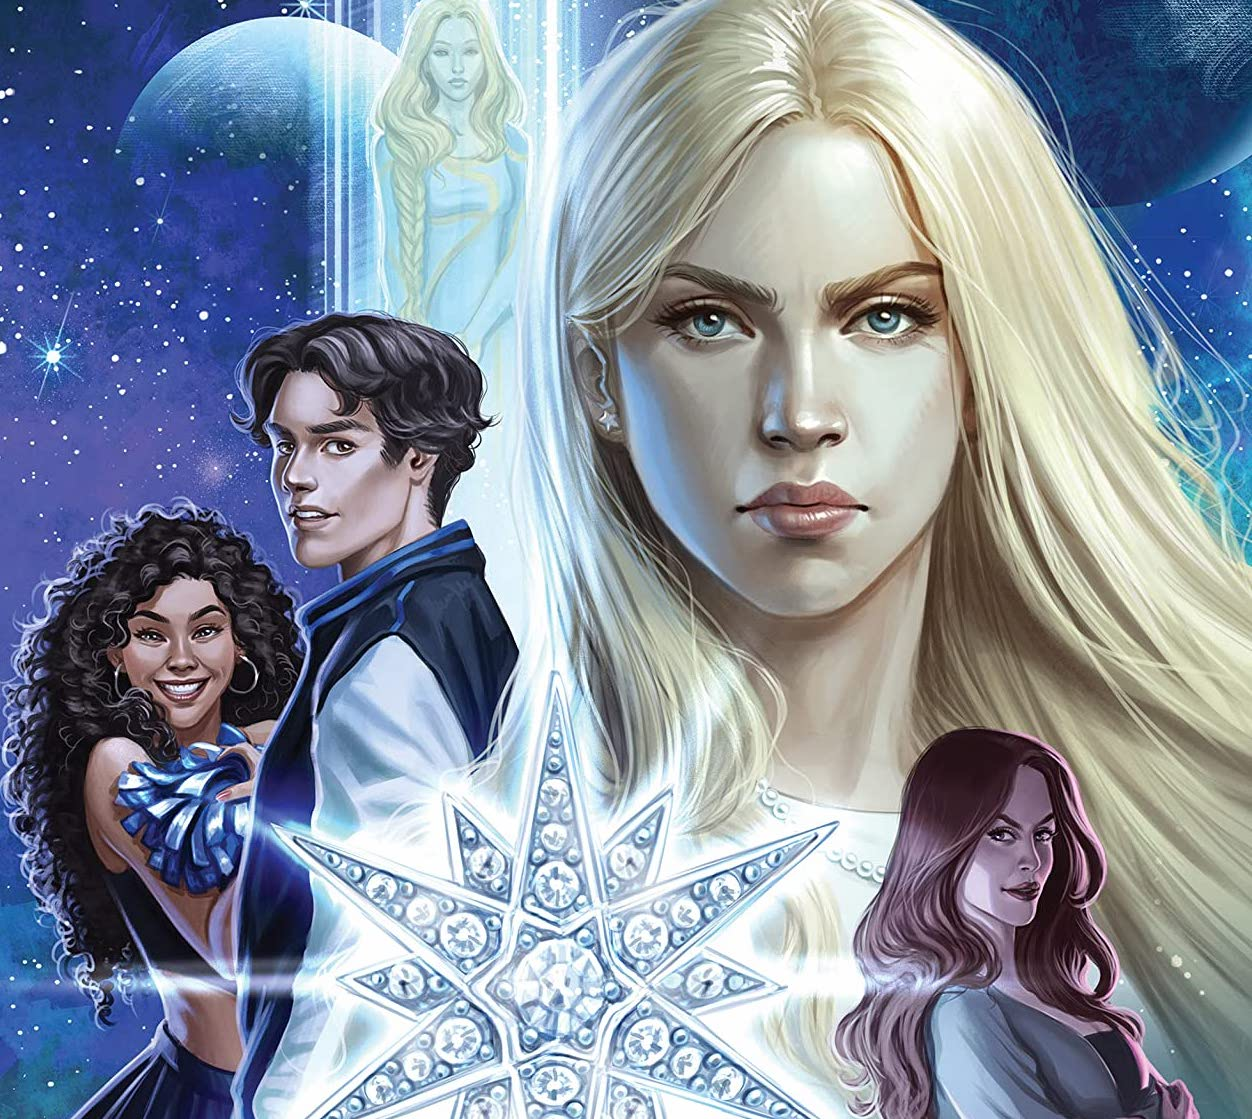 'Star Runner Chronicles Vol. 1: Fallen Star' is Buffy by way of Superman